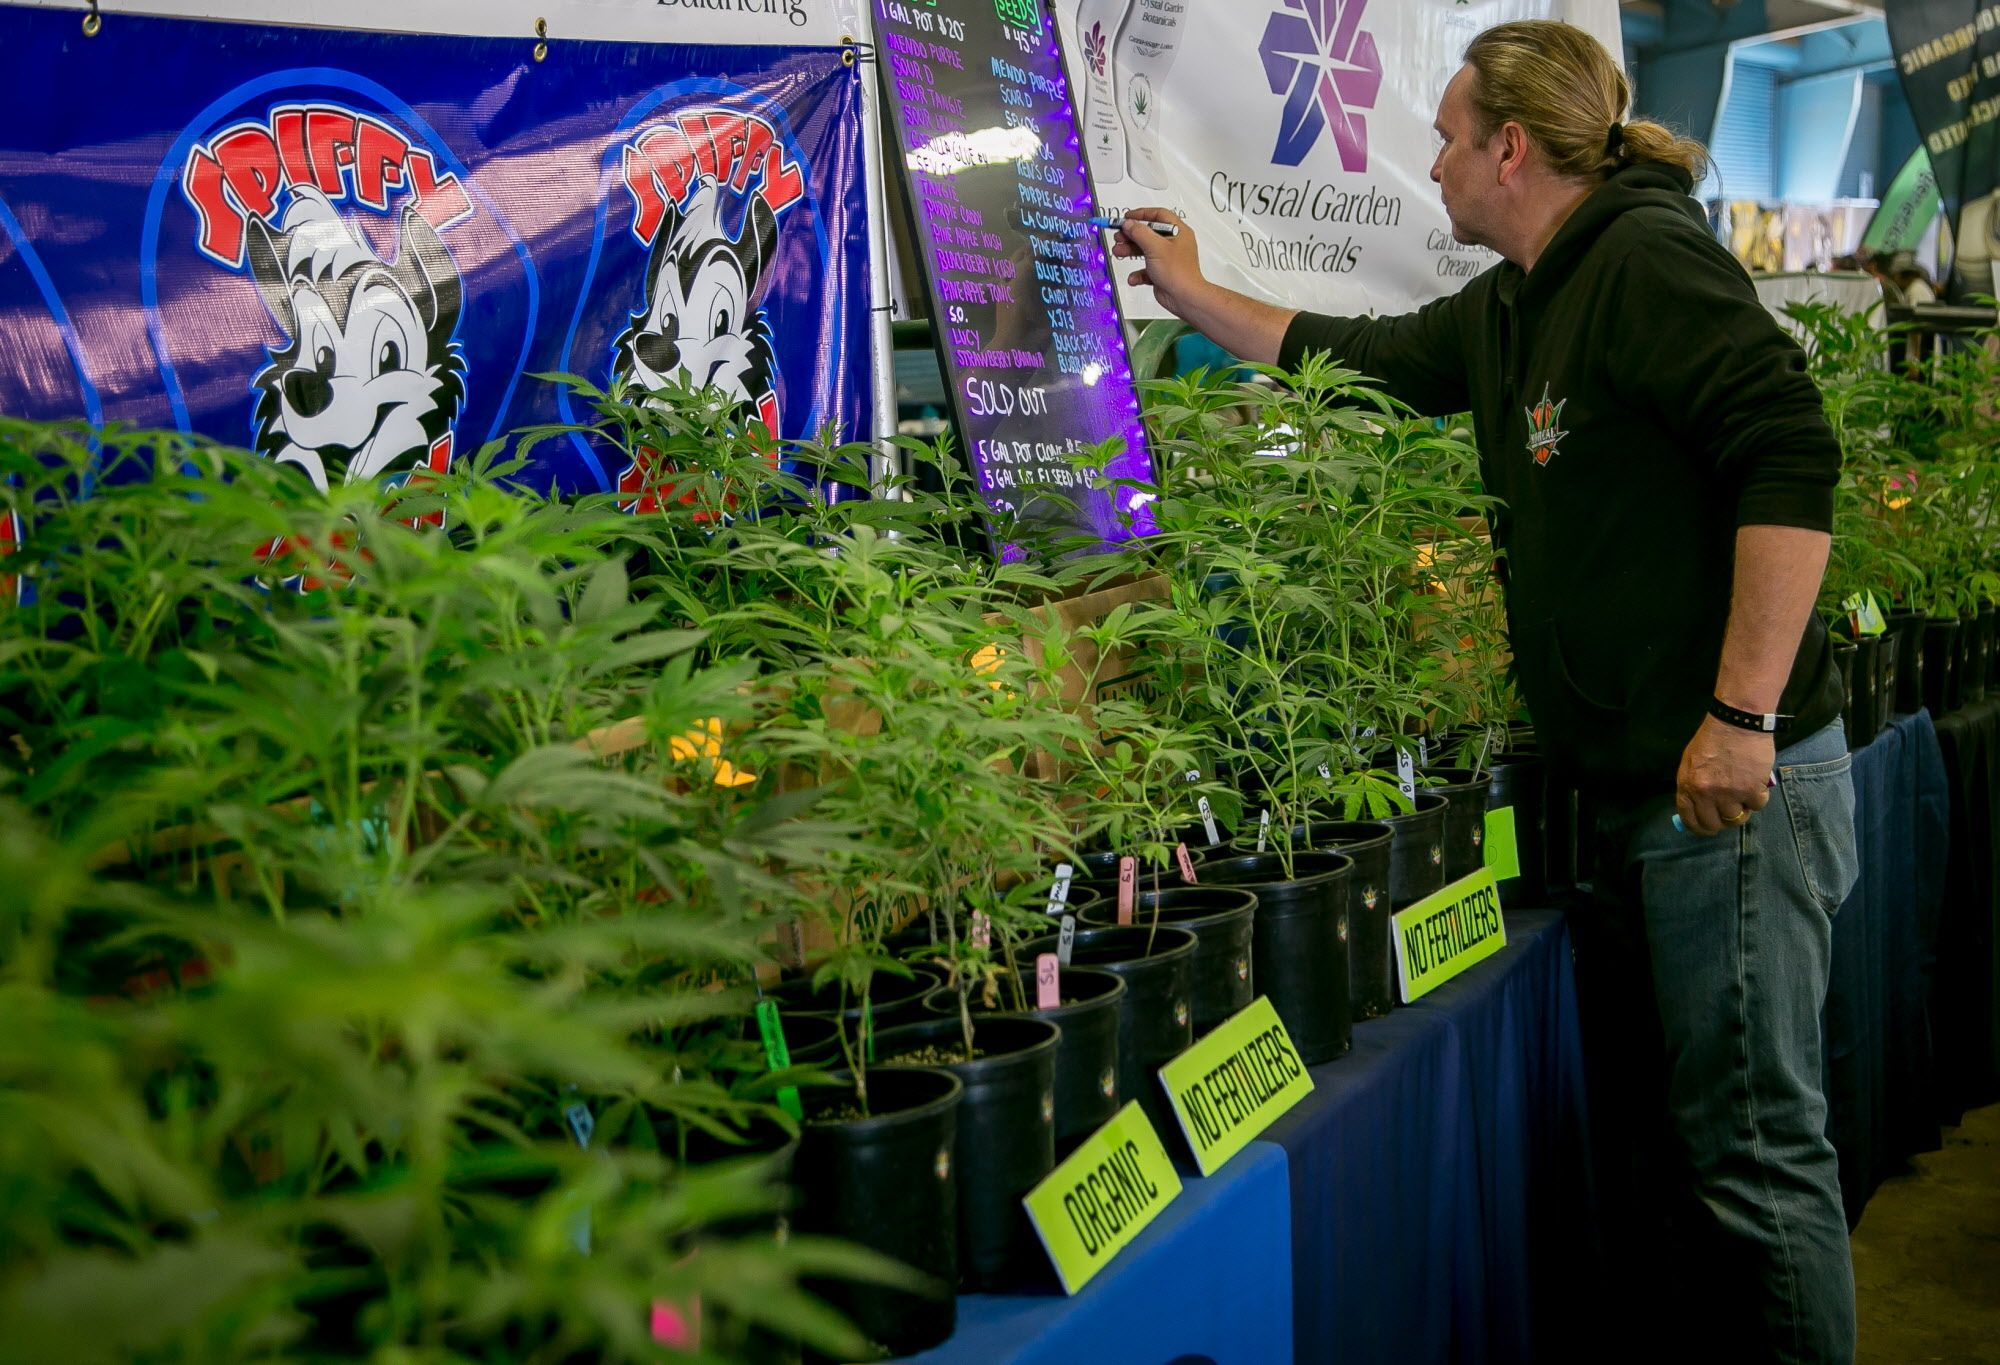 Marijuana plants at a booth at the Cannabis Cup event in the Sonoma County Fairgrounds in Santa Rosa, Calif., are seen on June 3rd, 2017.